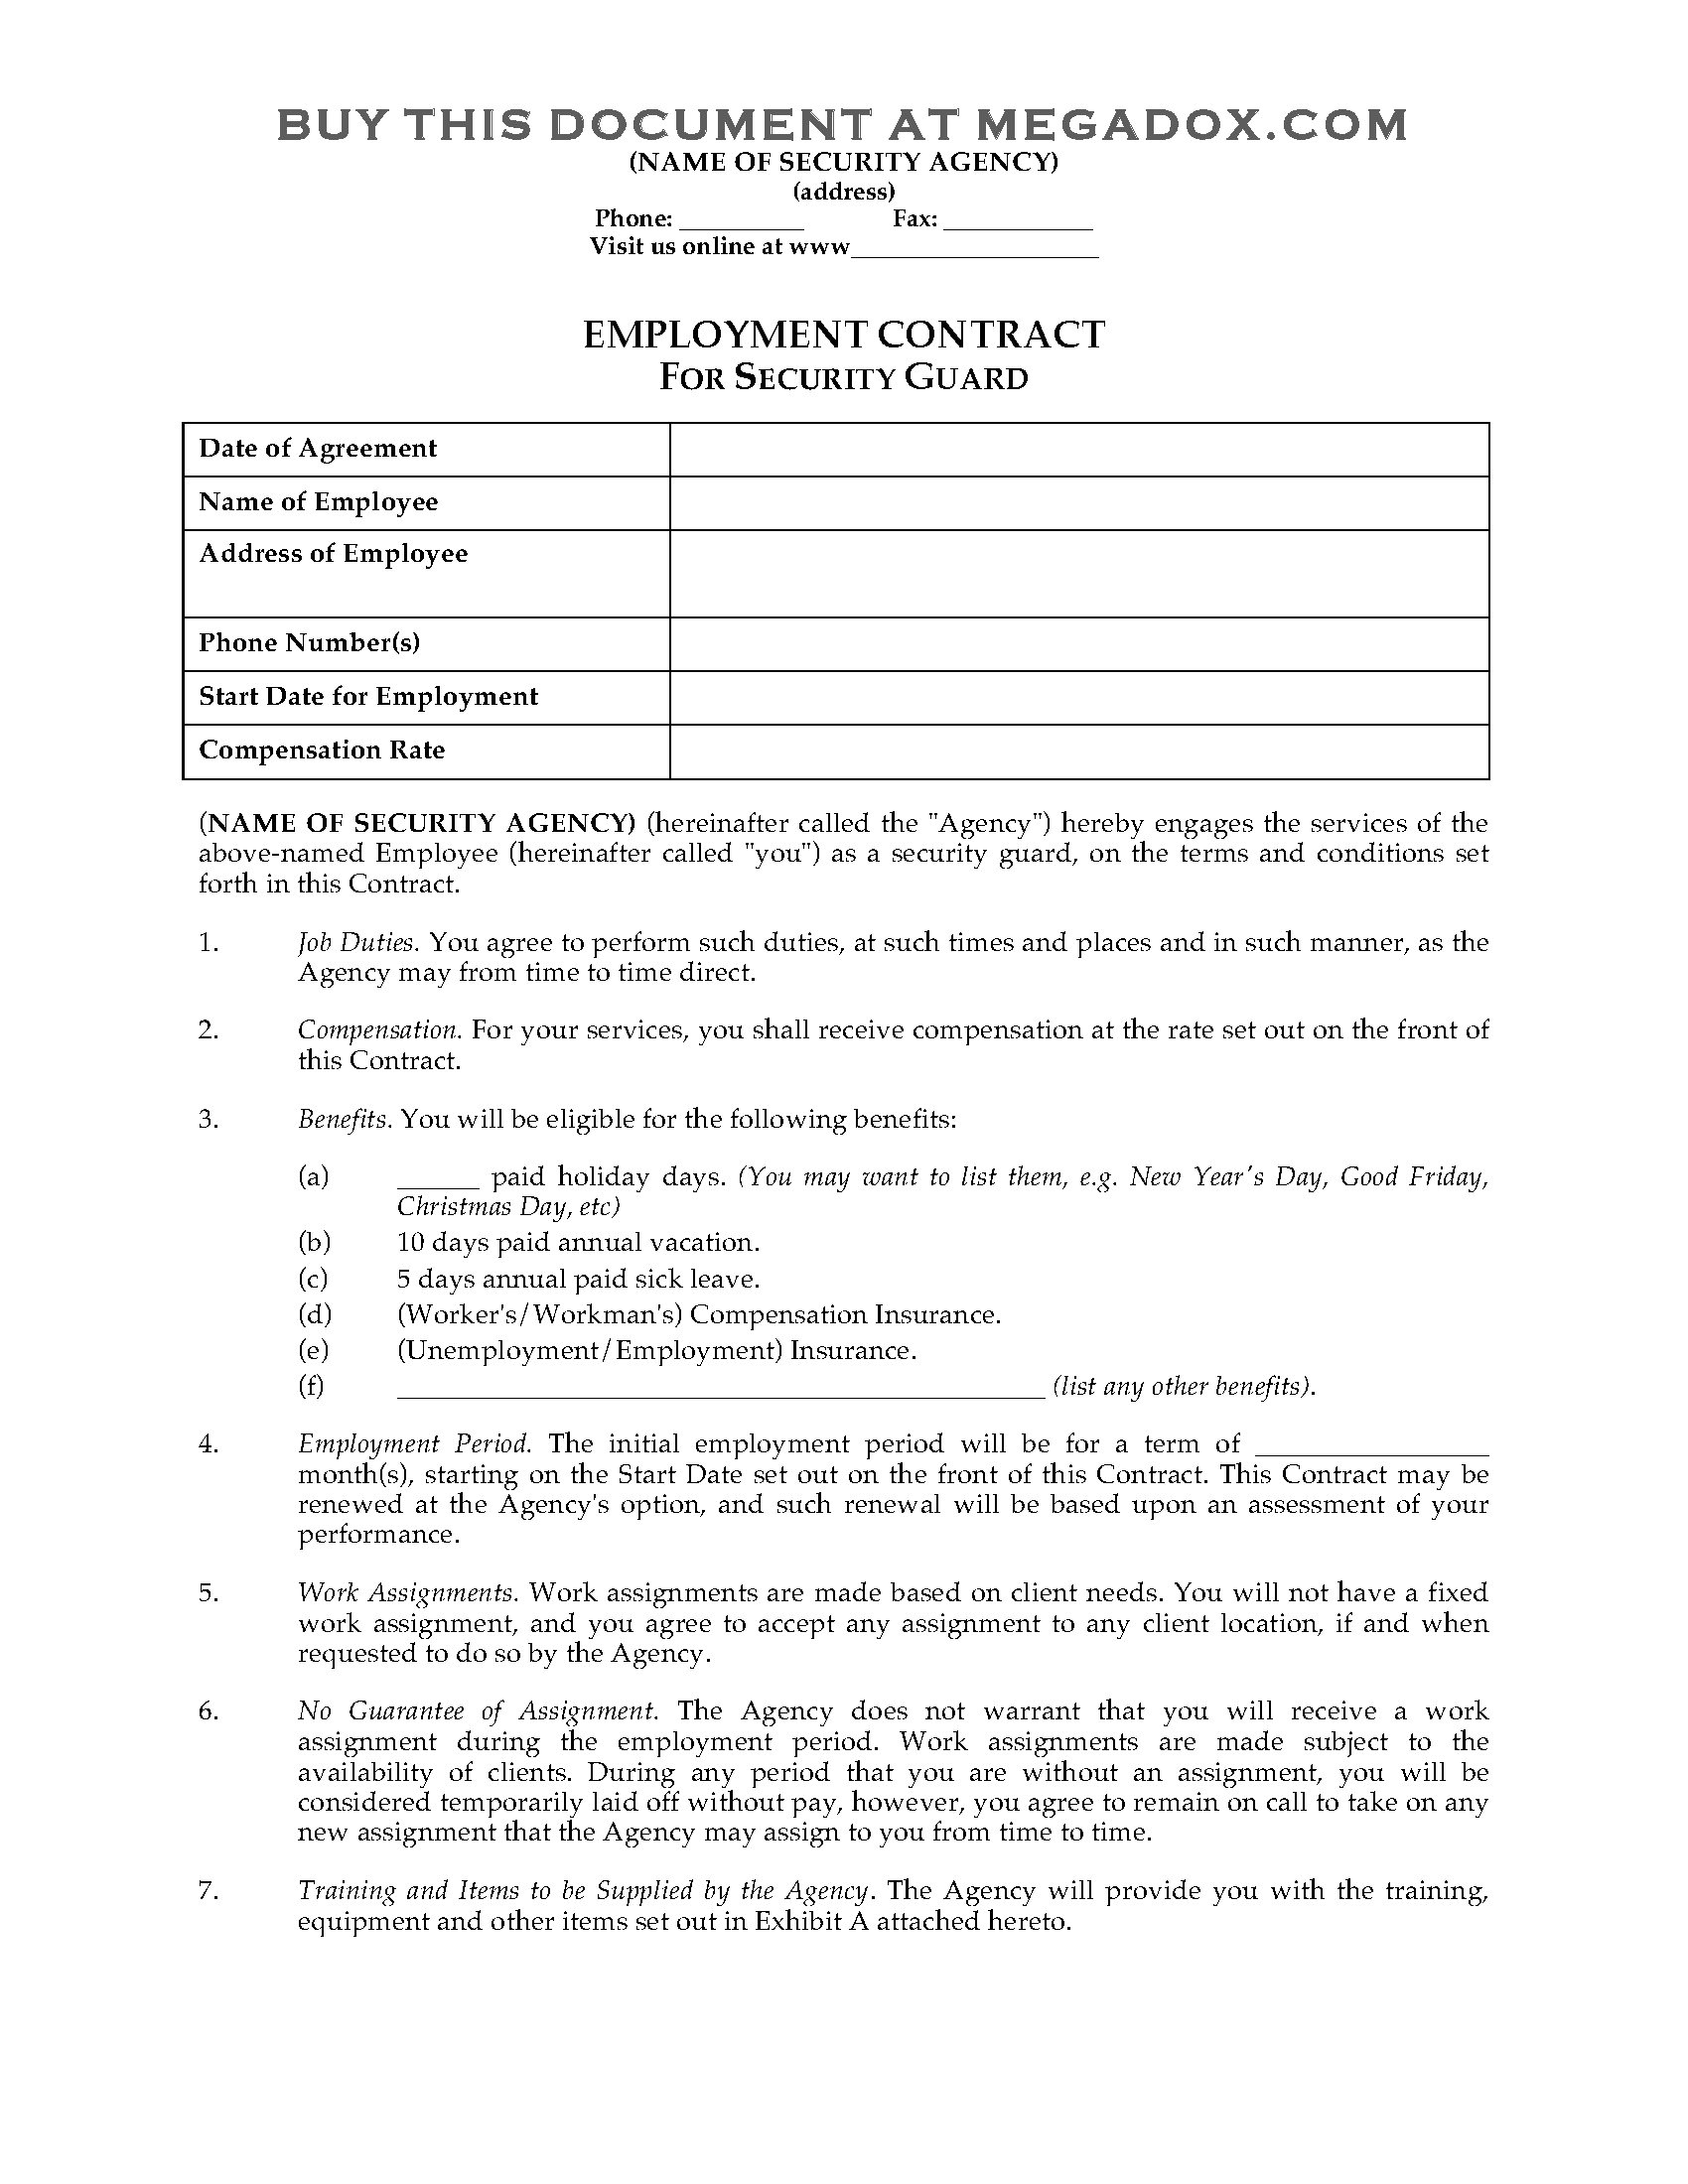 Security Contracts Templates Security Guard Employment Contract Legal forms and